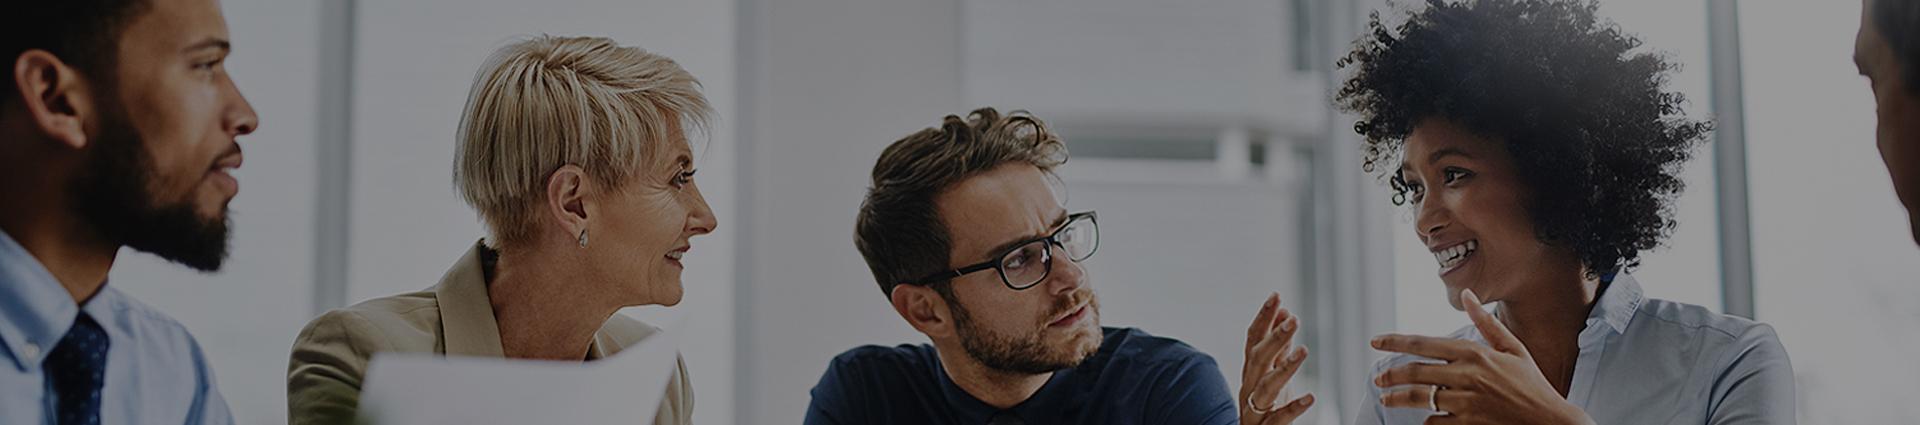 a man thinking during a meeting